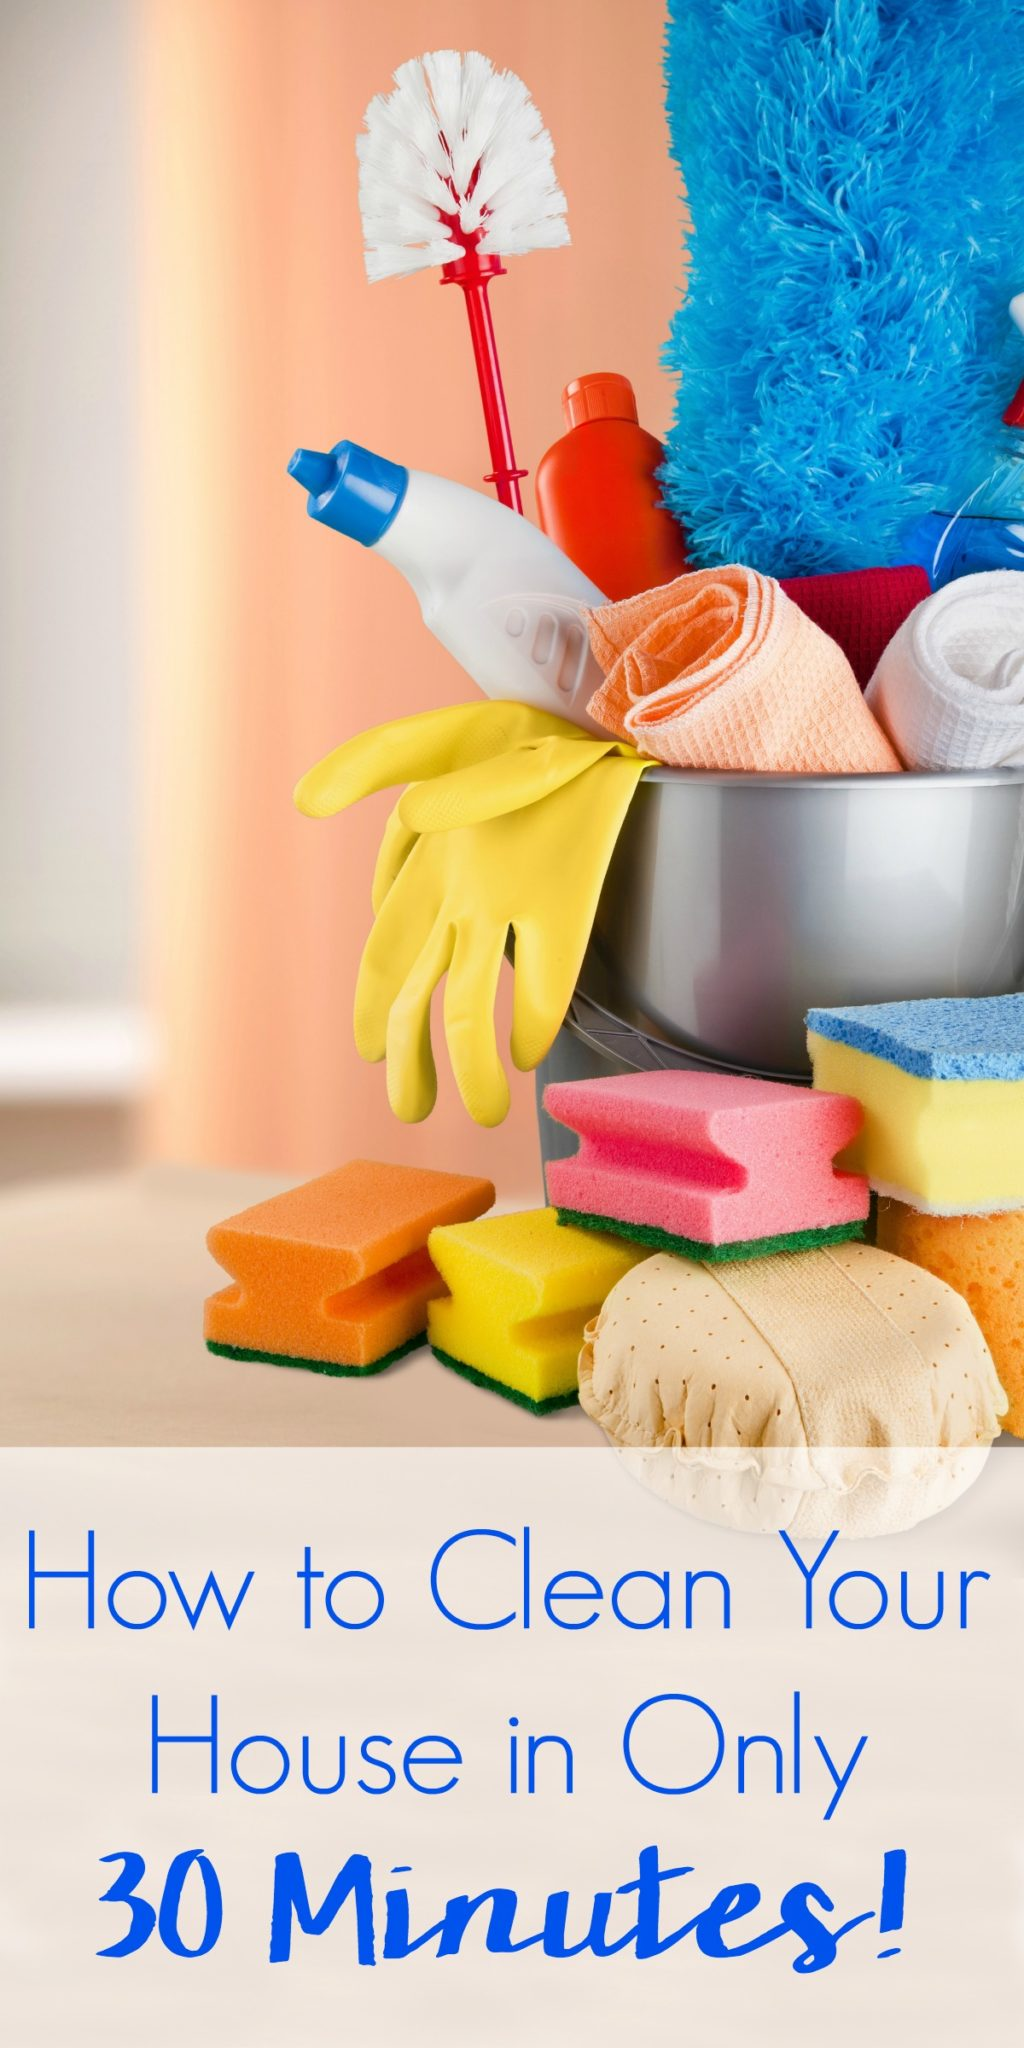 Friends and family stopping by and your house is a wreck? Now it's no problem! Learn How to Clean House in 30 Minutes! #cleaning #cleaningtips